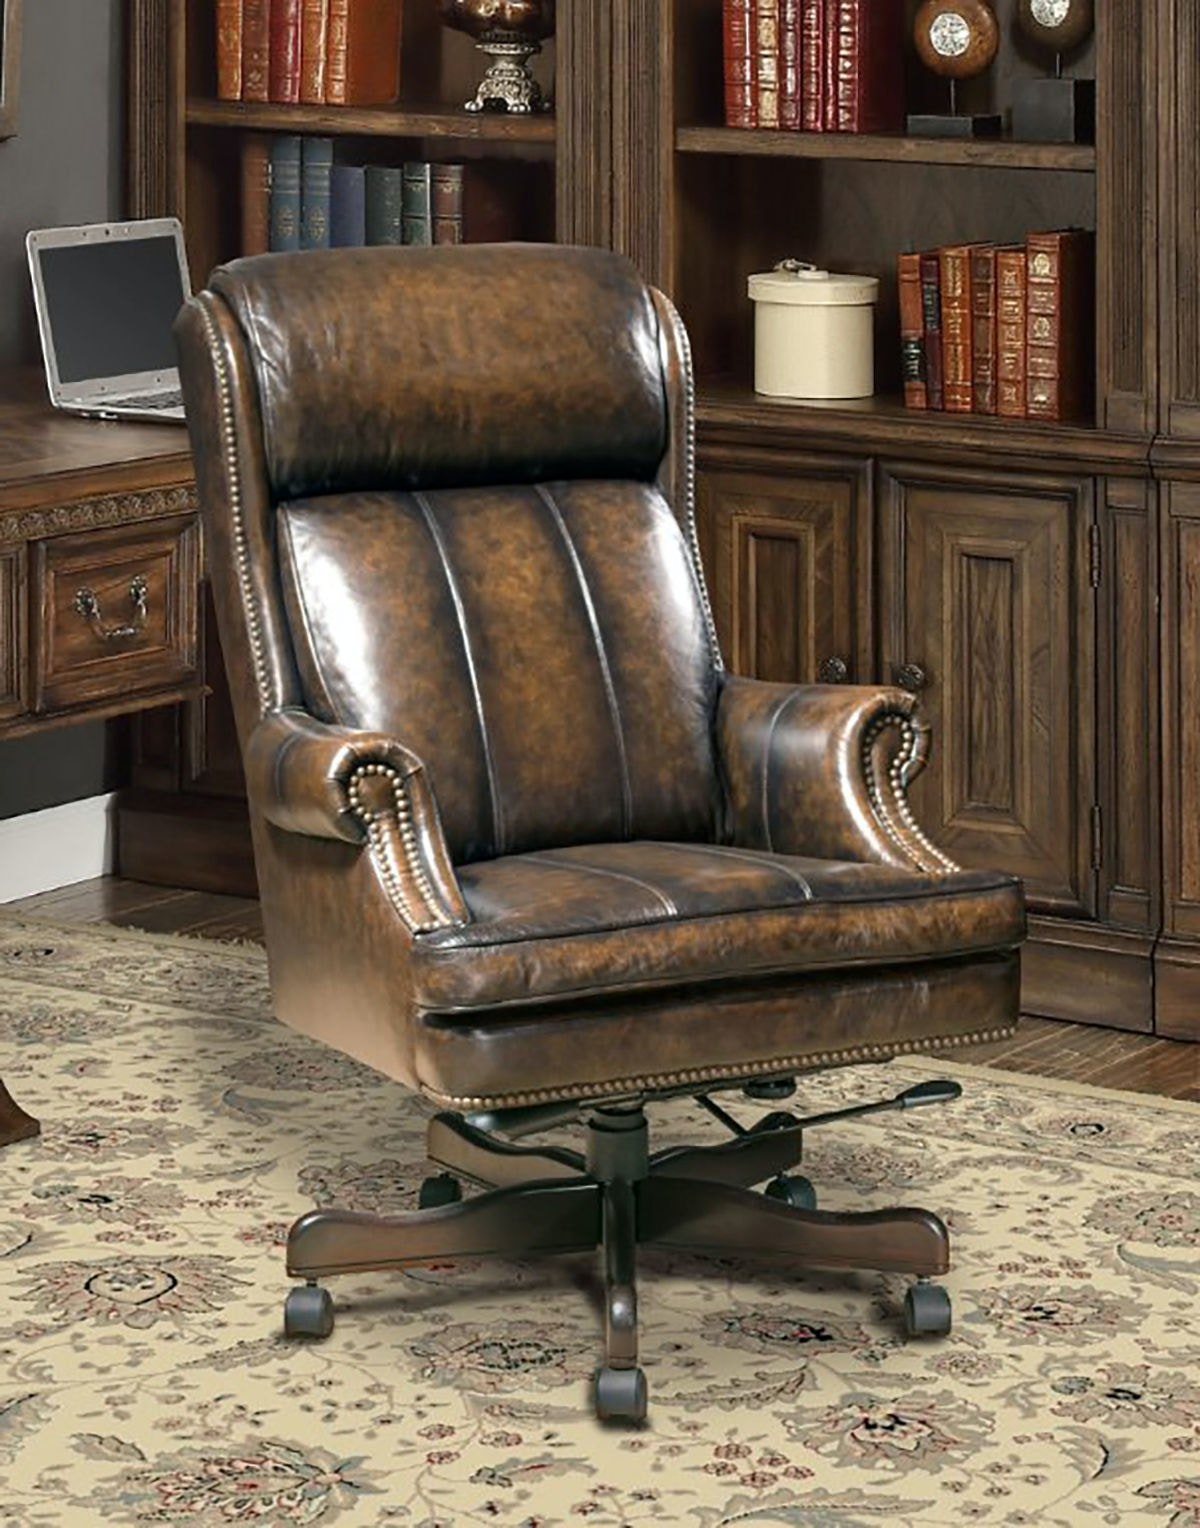 Marvelous Chino Executive Desk Chair ST:416261